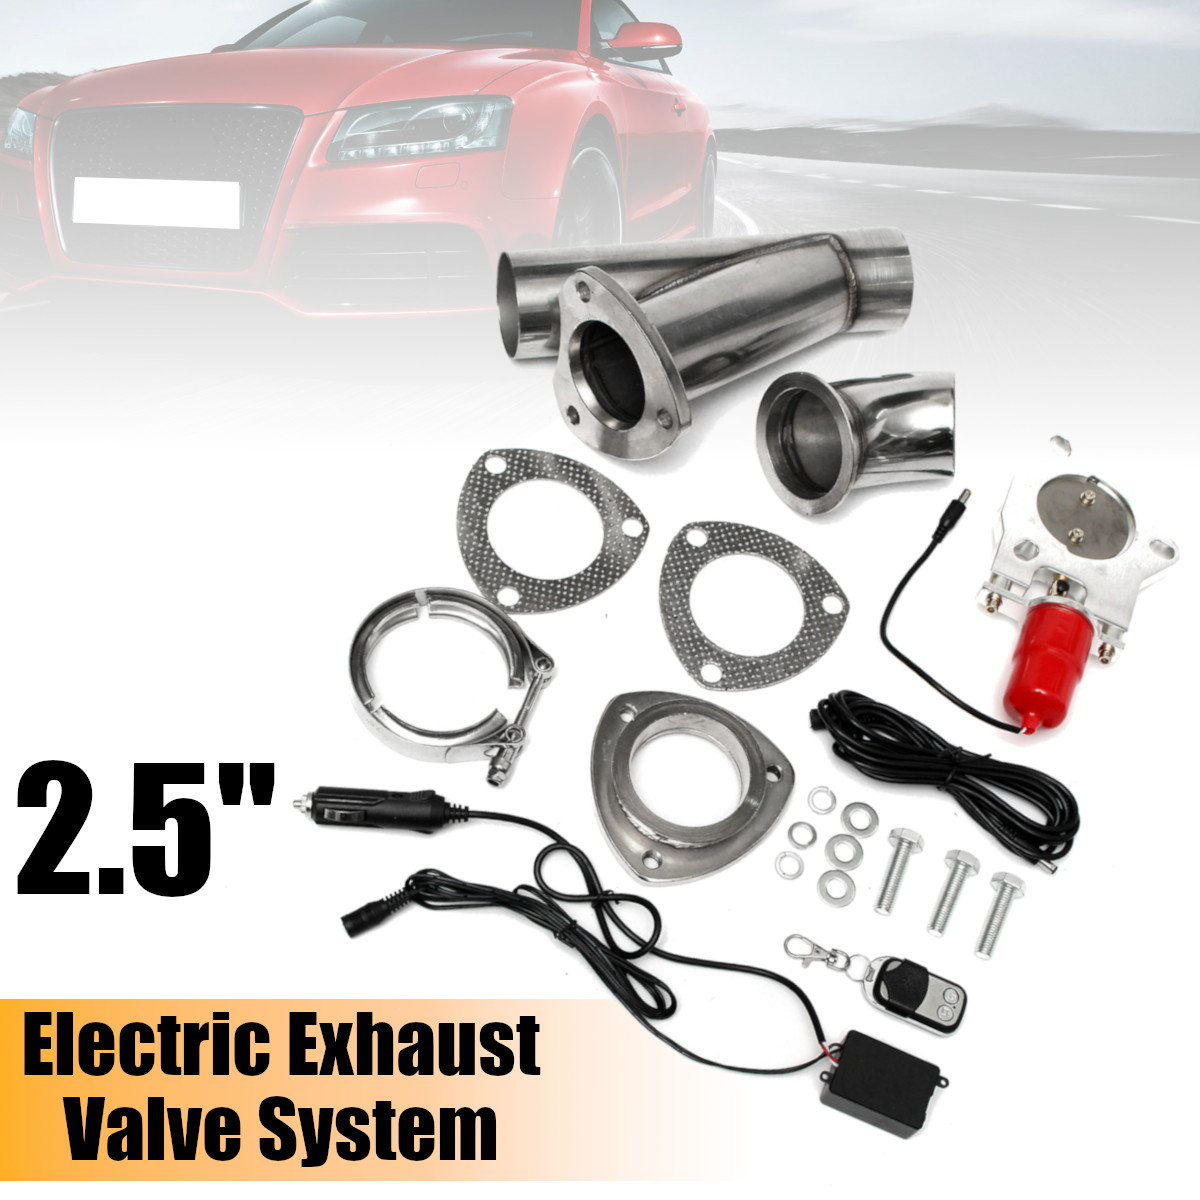 2.5 Car Electric Exhaust Downpipe Exhaust Tips Cutout E Cut Out Dual Valve Controller Remote Kit